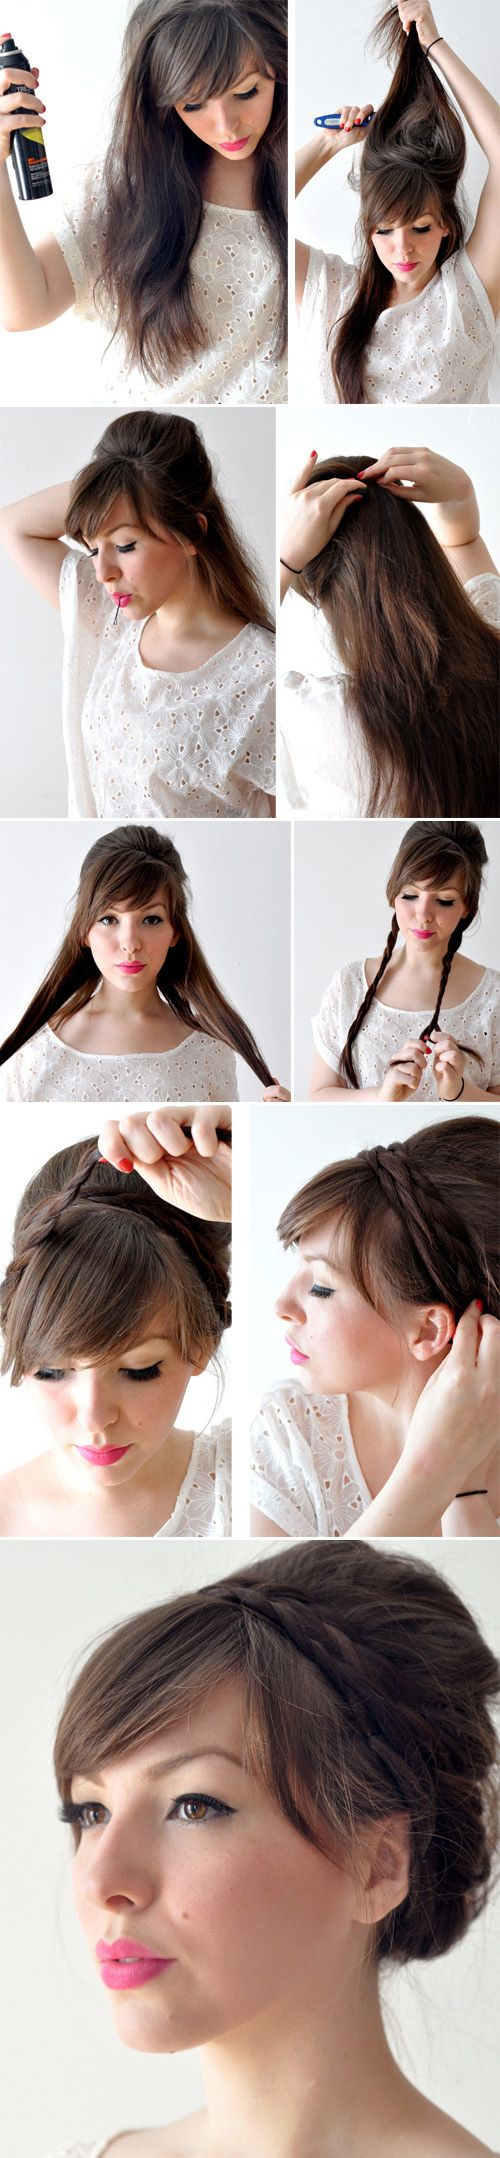 Diy simple braid updo - Bangs....I want my bangs like this